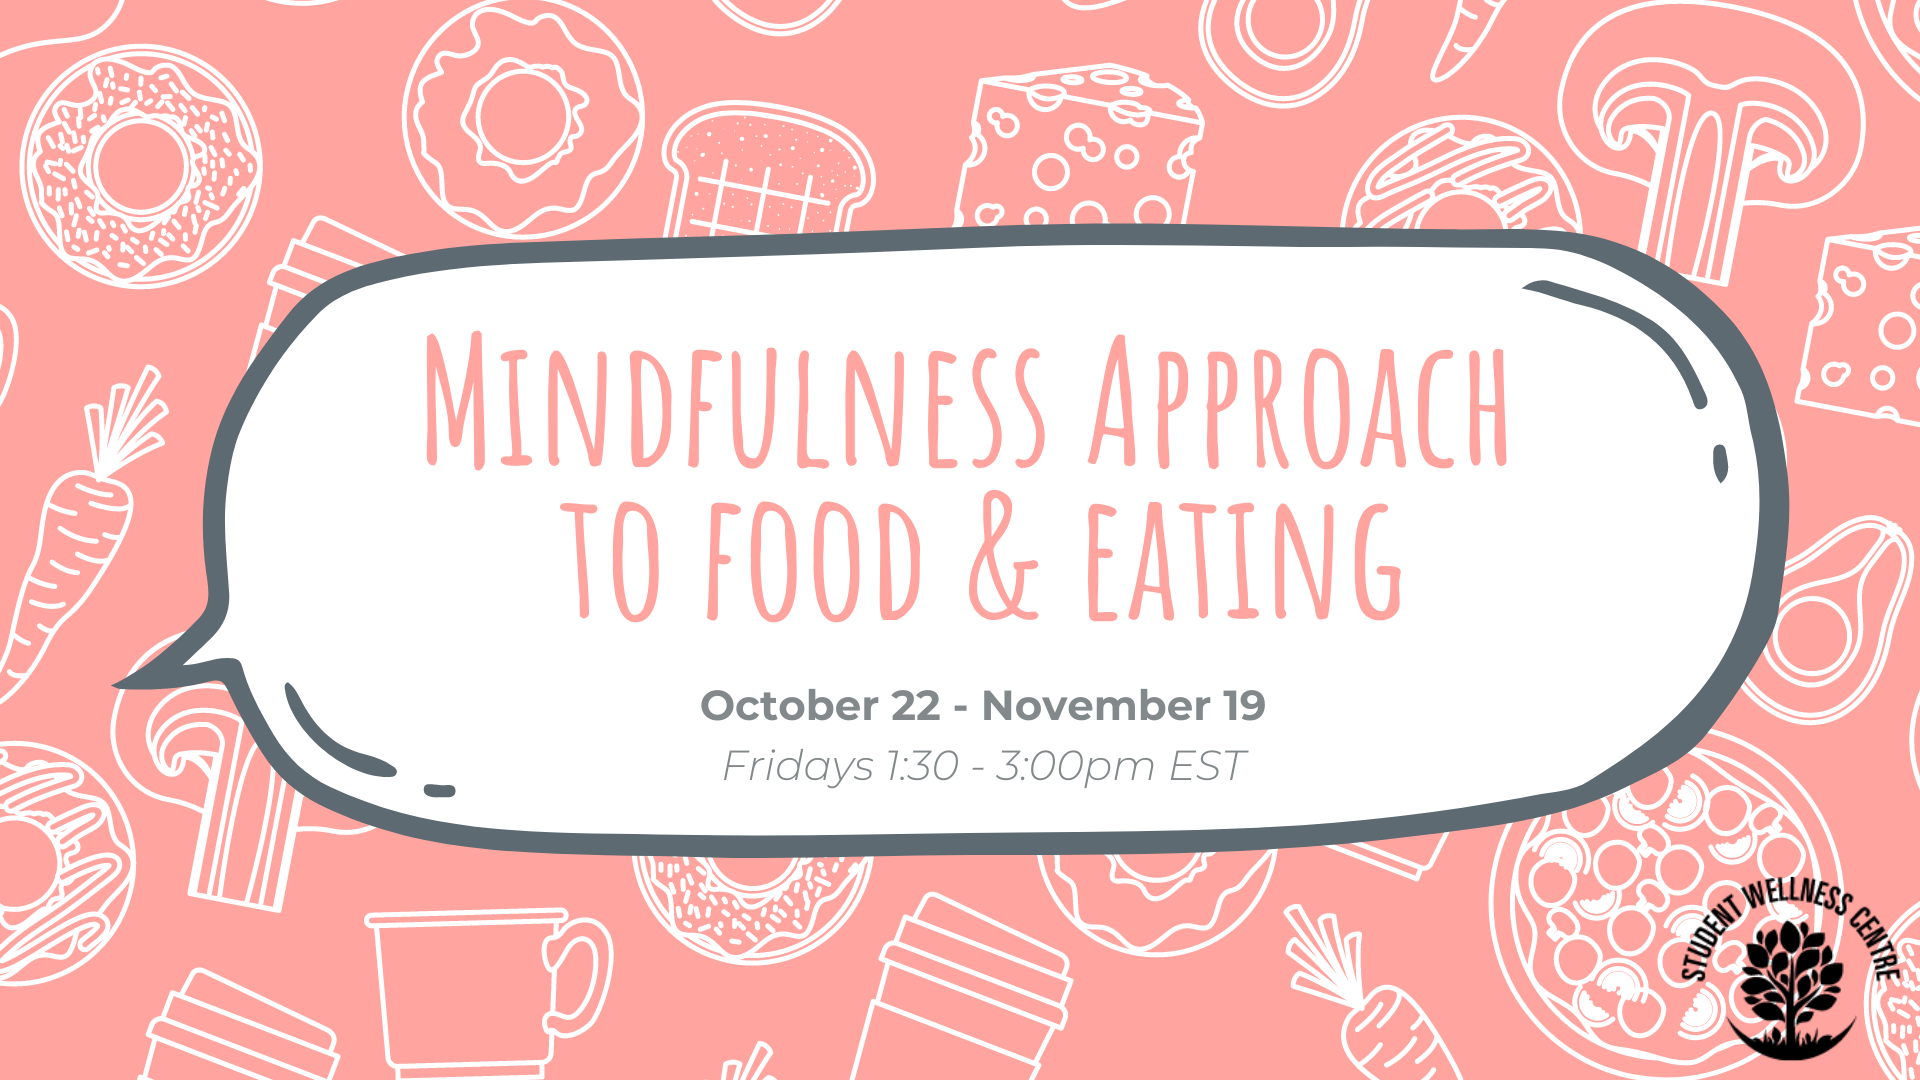 Mindfulness Approach To Food & Eating